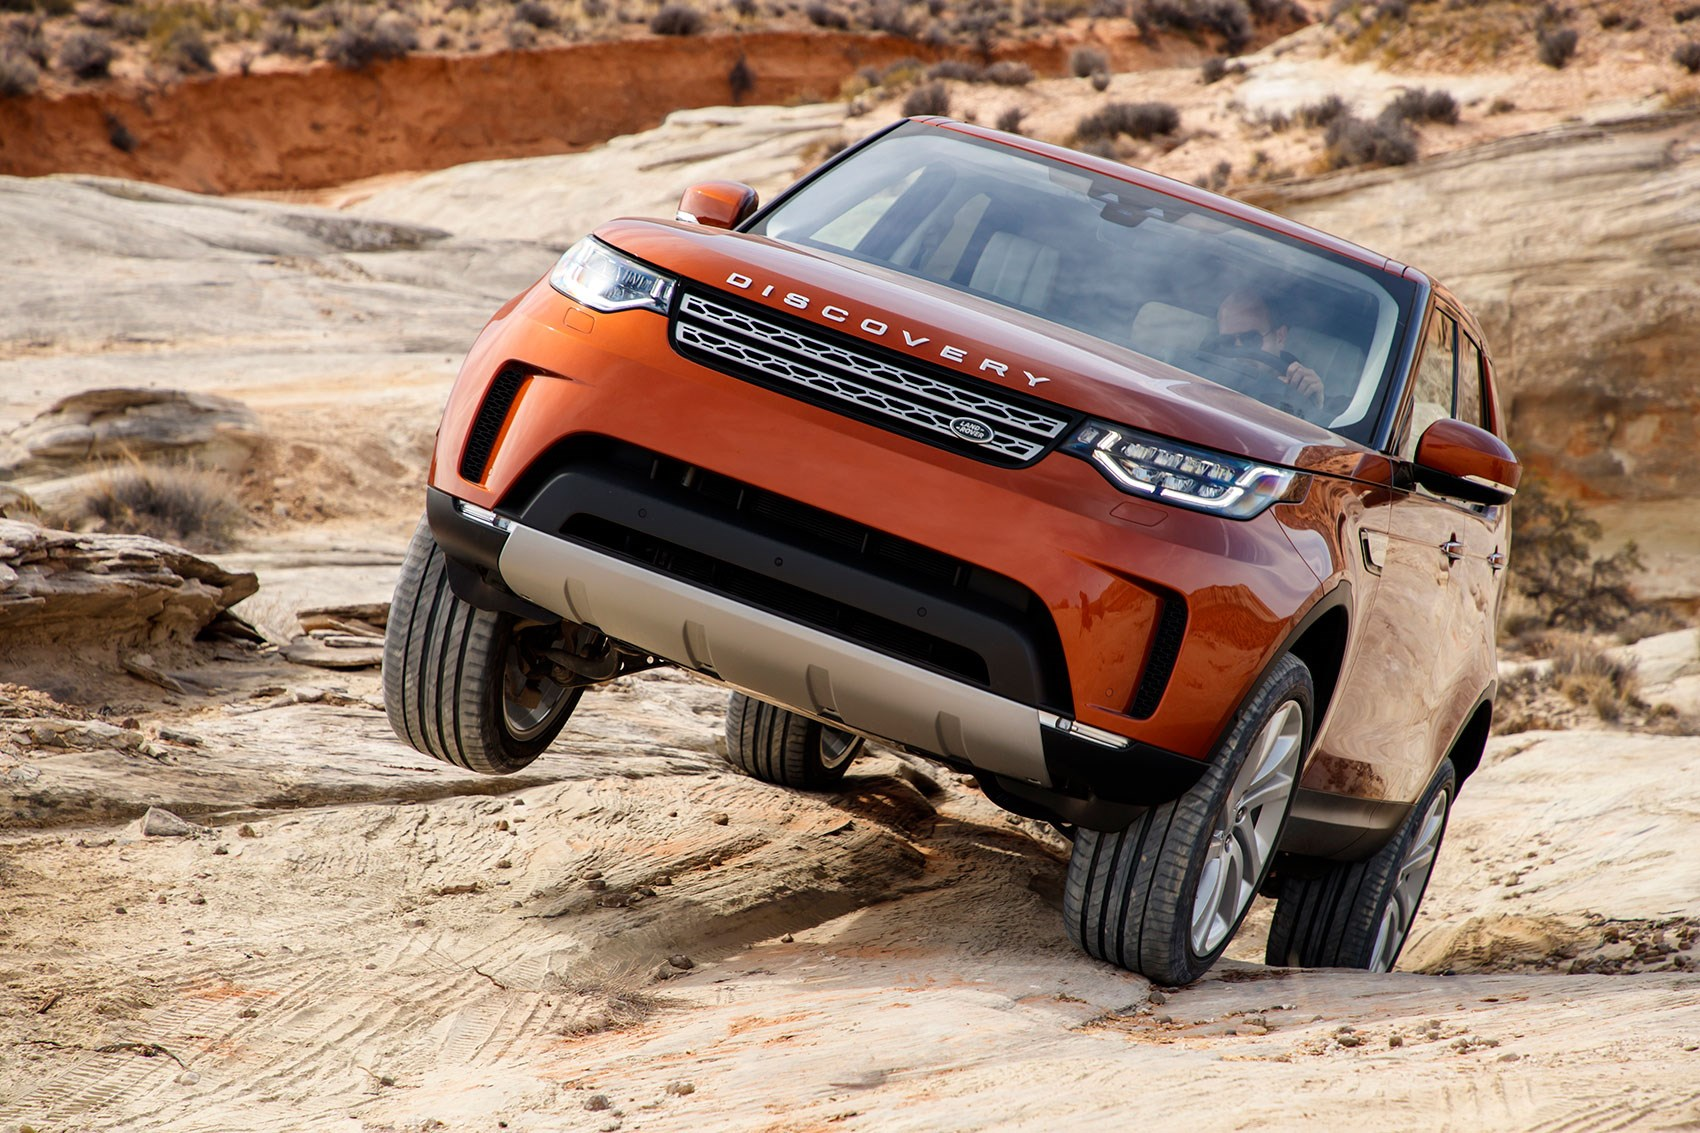 A proper off-road workhorse: we plug mud in the new Land Rover Discovery 5